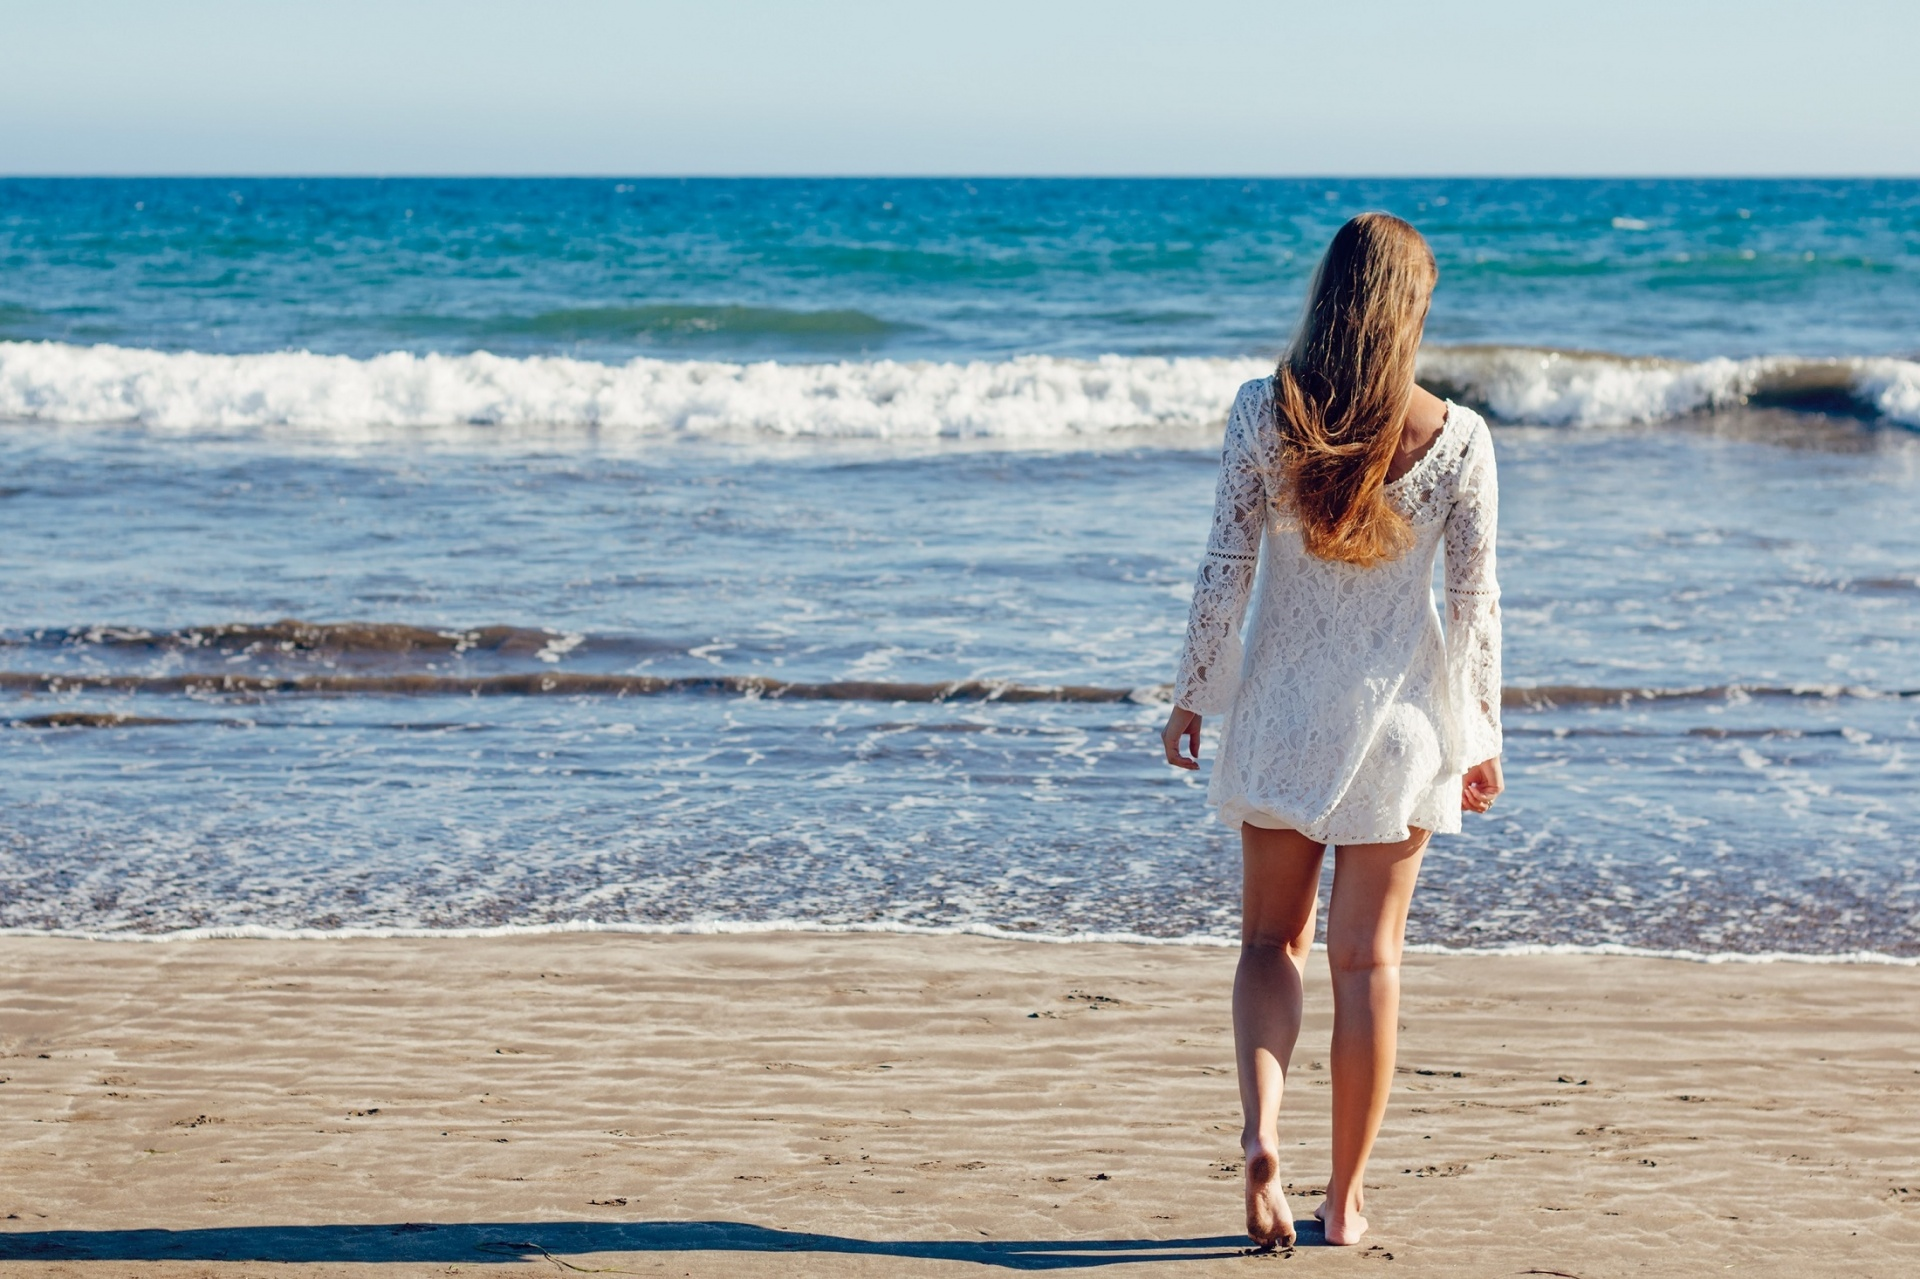 Woman At The Beach Free Stock Photo - Public Domain Pictures